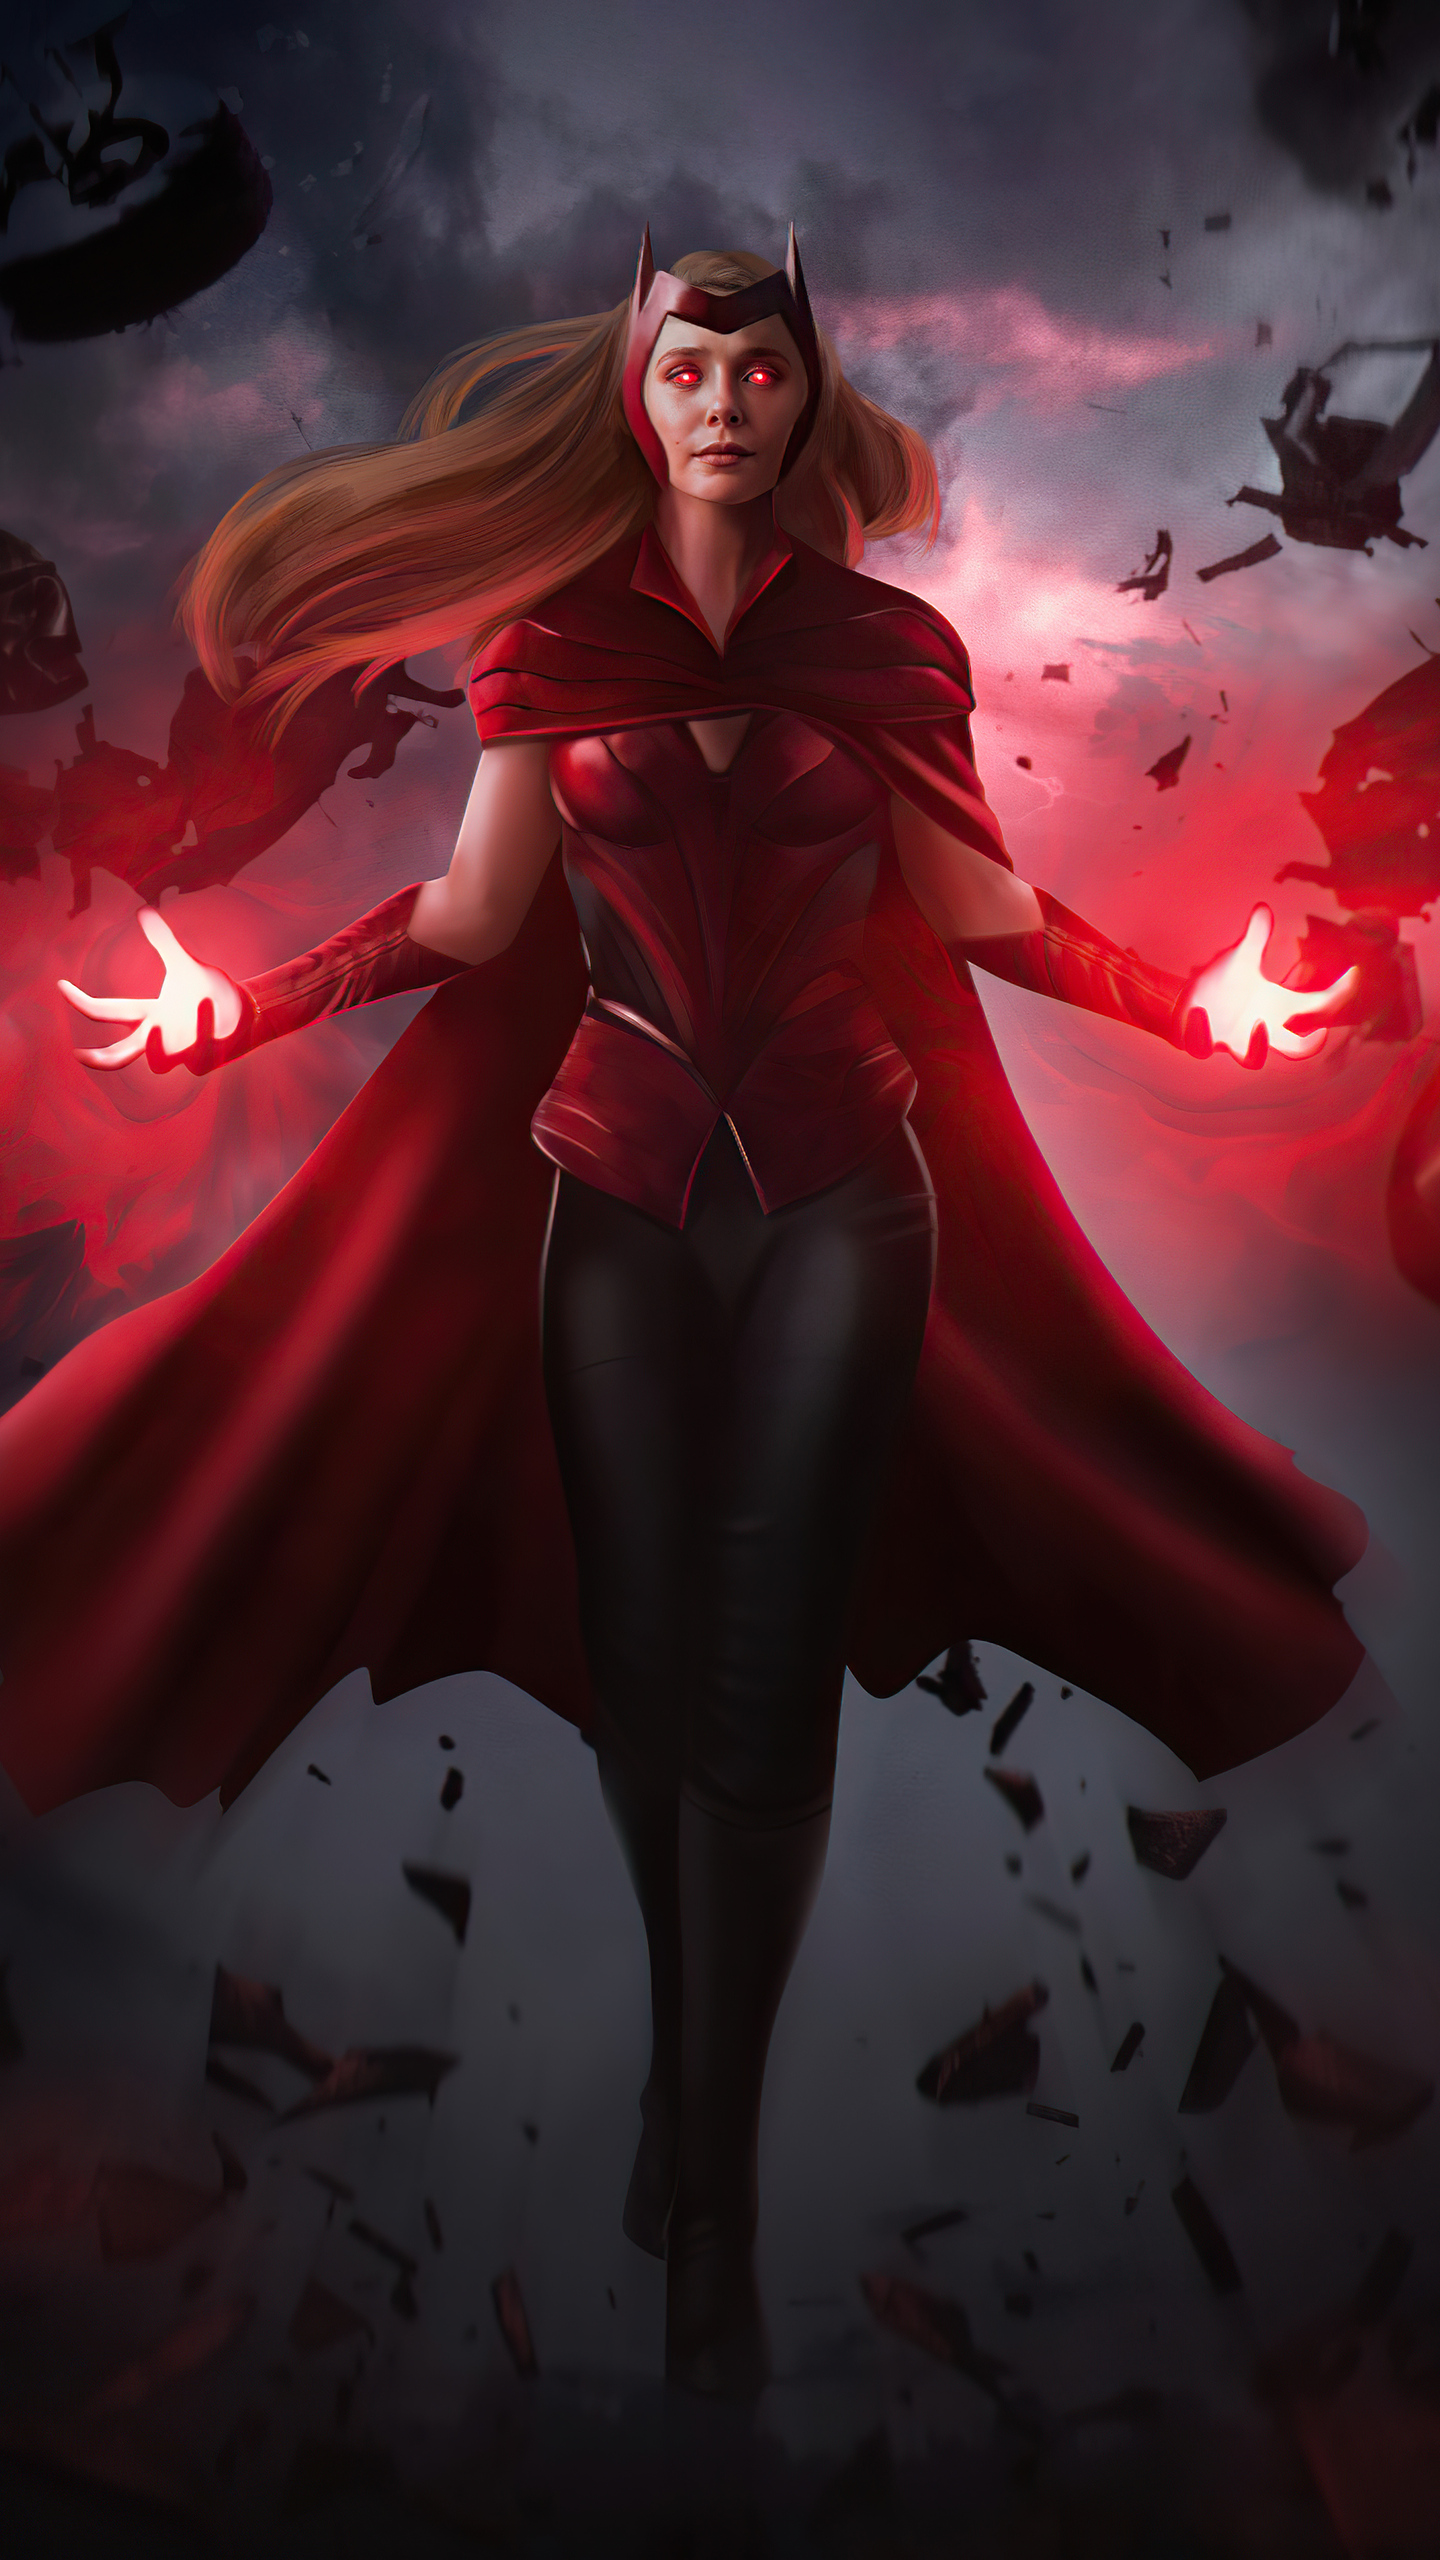 the-scarlet-witch-wanda-vision-4k-t4.jpg